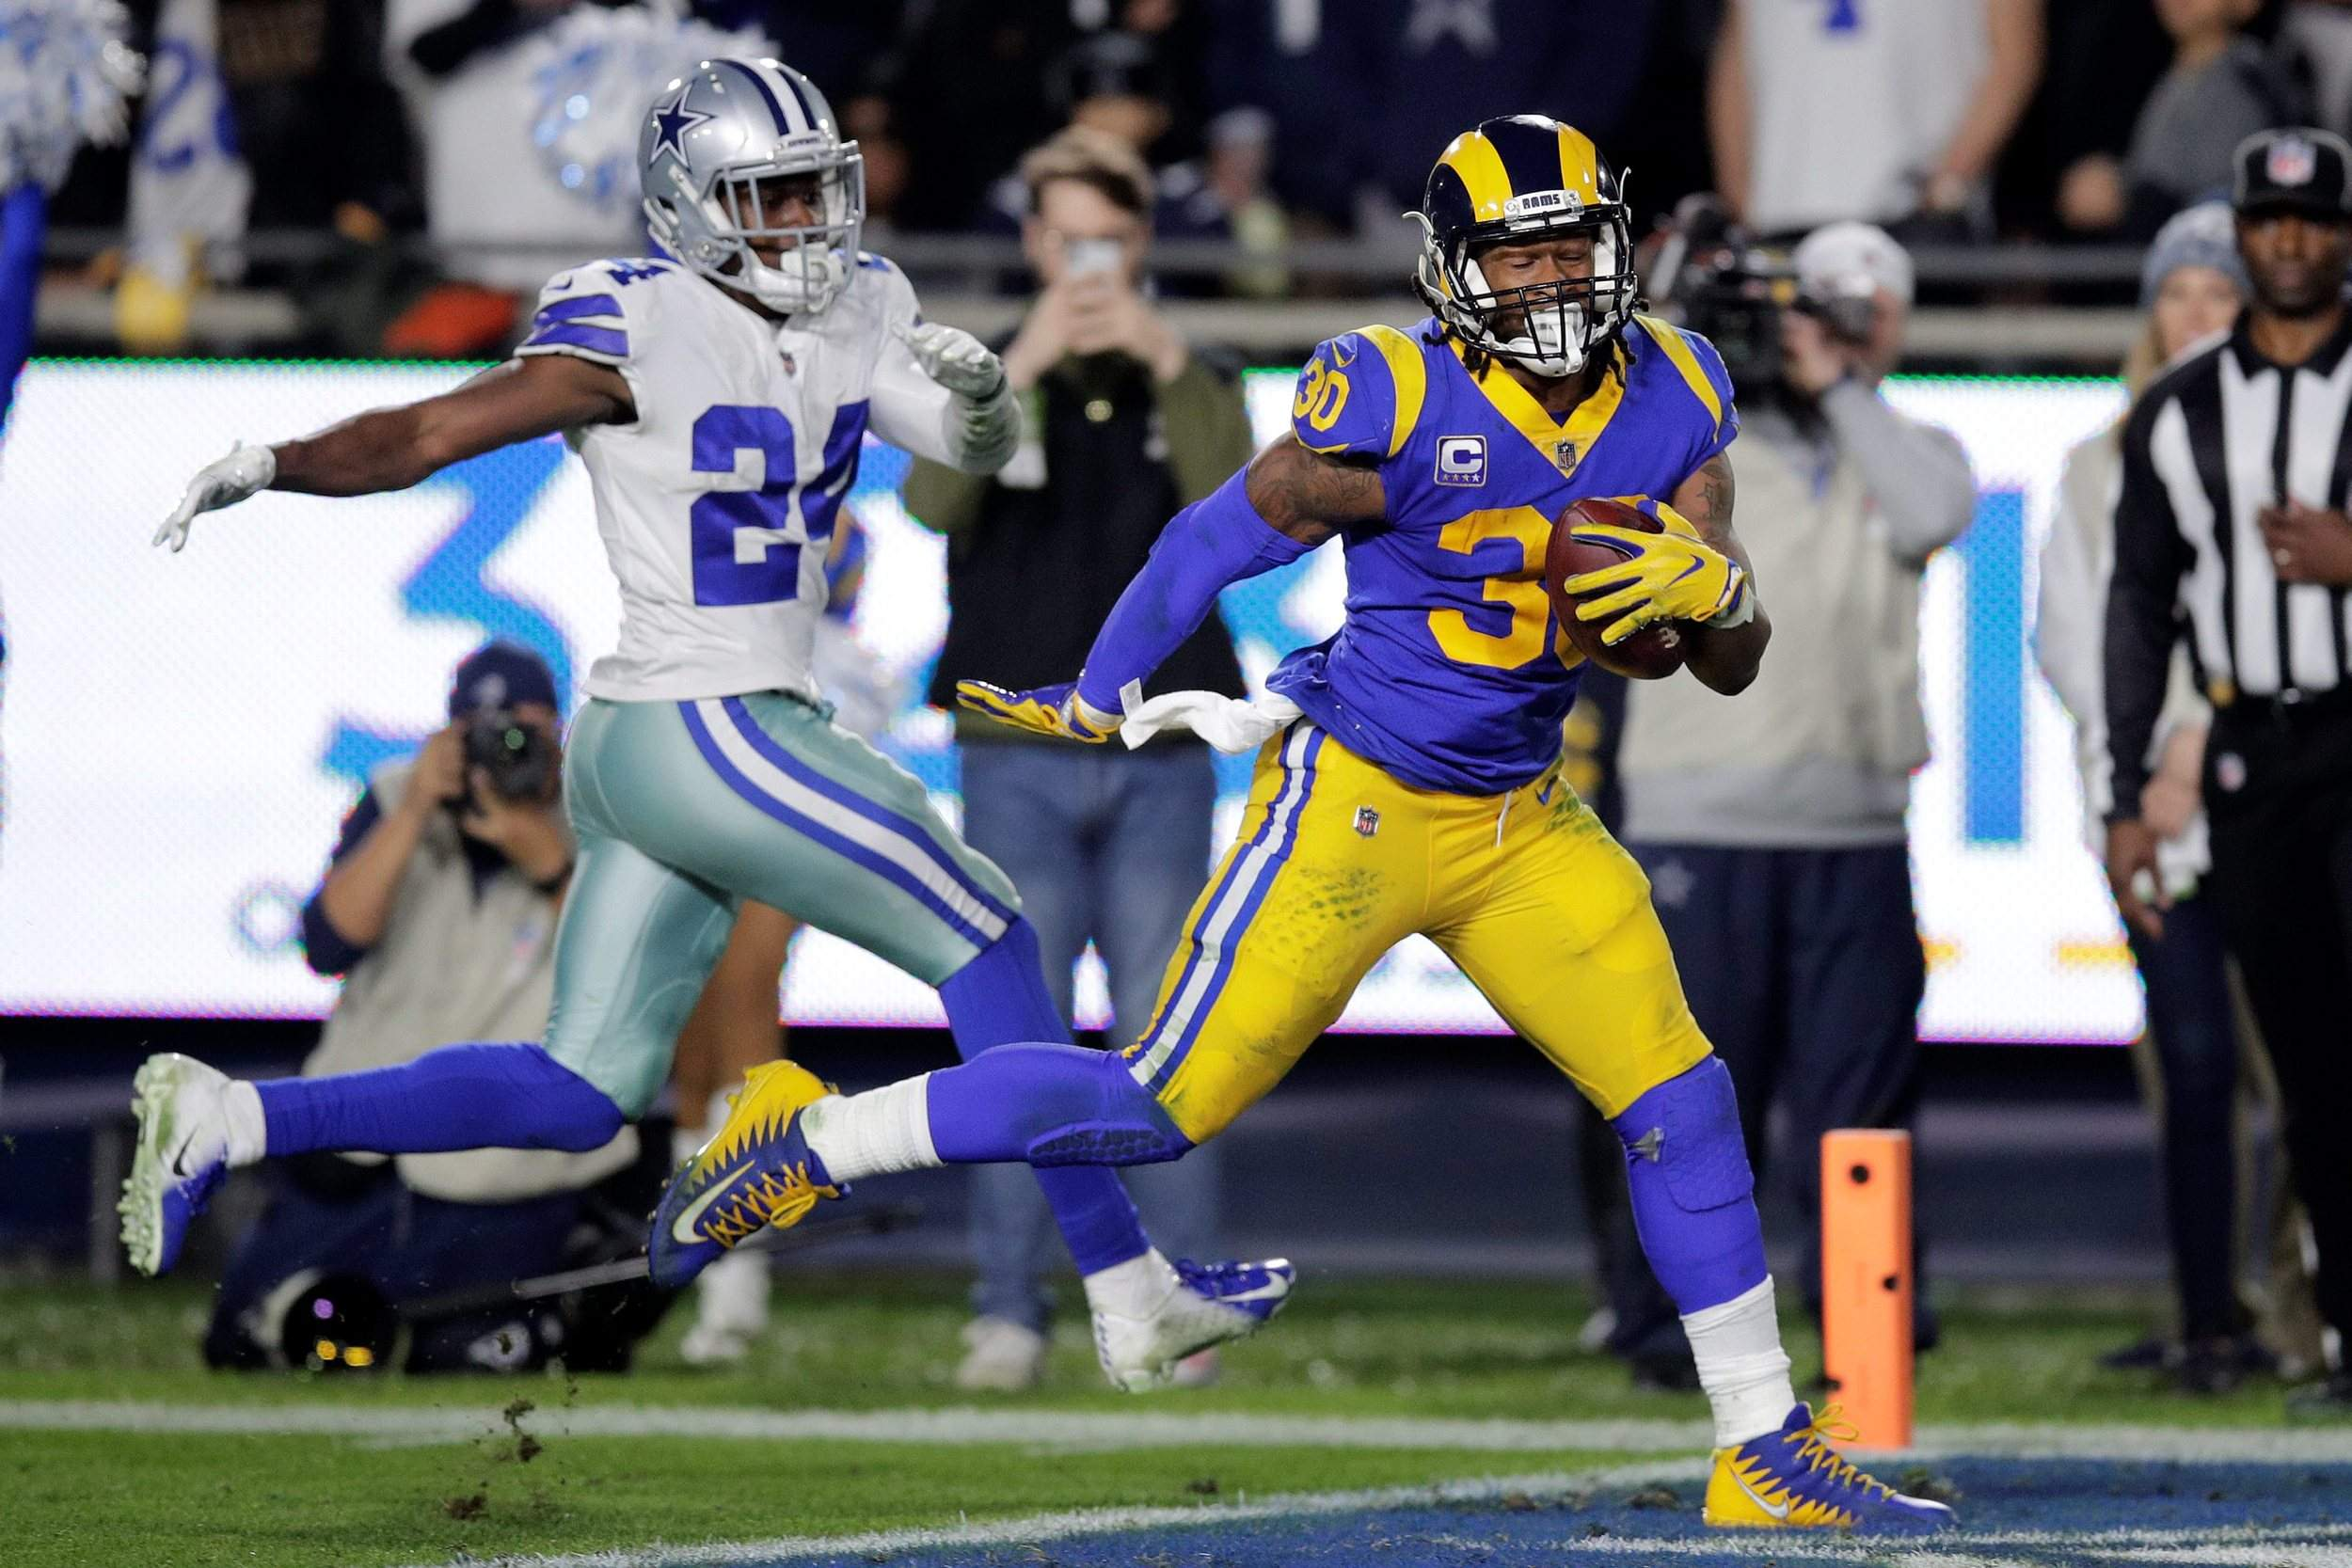 a4576ca88ee Los Angeles Rams running back Todd Gurley scores past Dallas Cowboys  cornerback Chidobe Awuzie during the first half Saturday in Los Angeles.